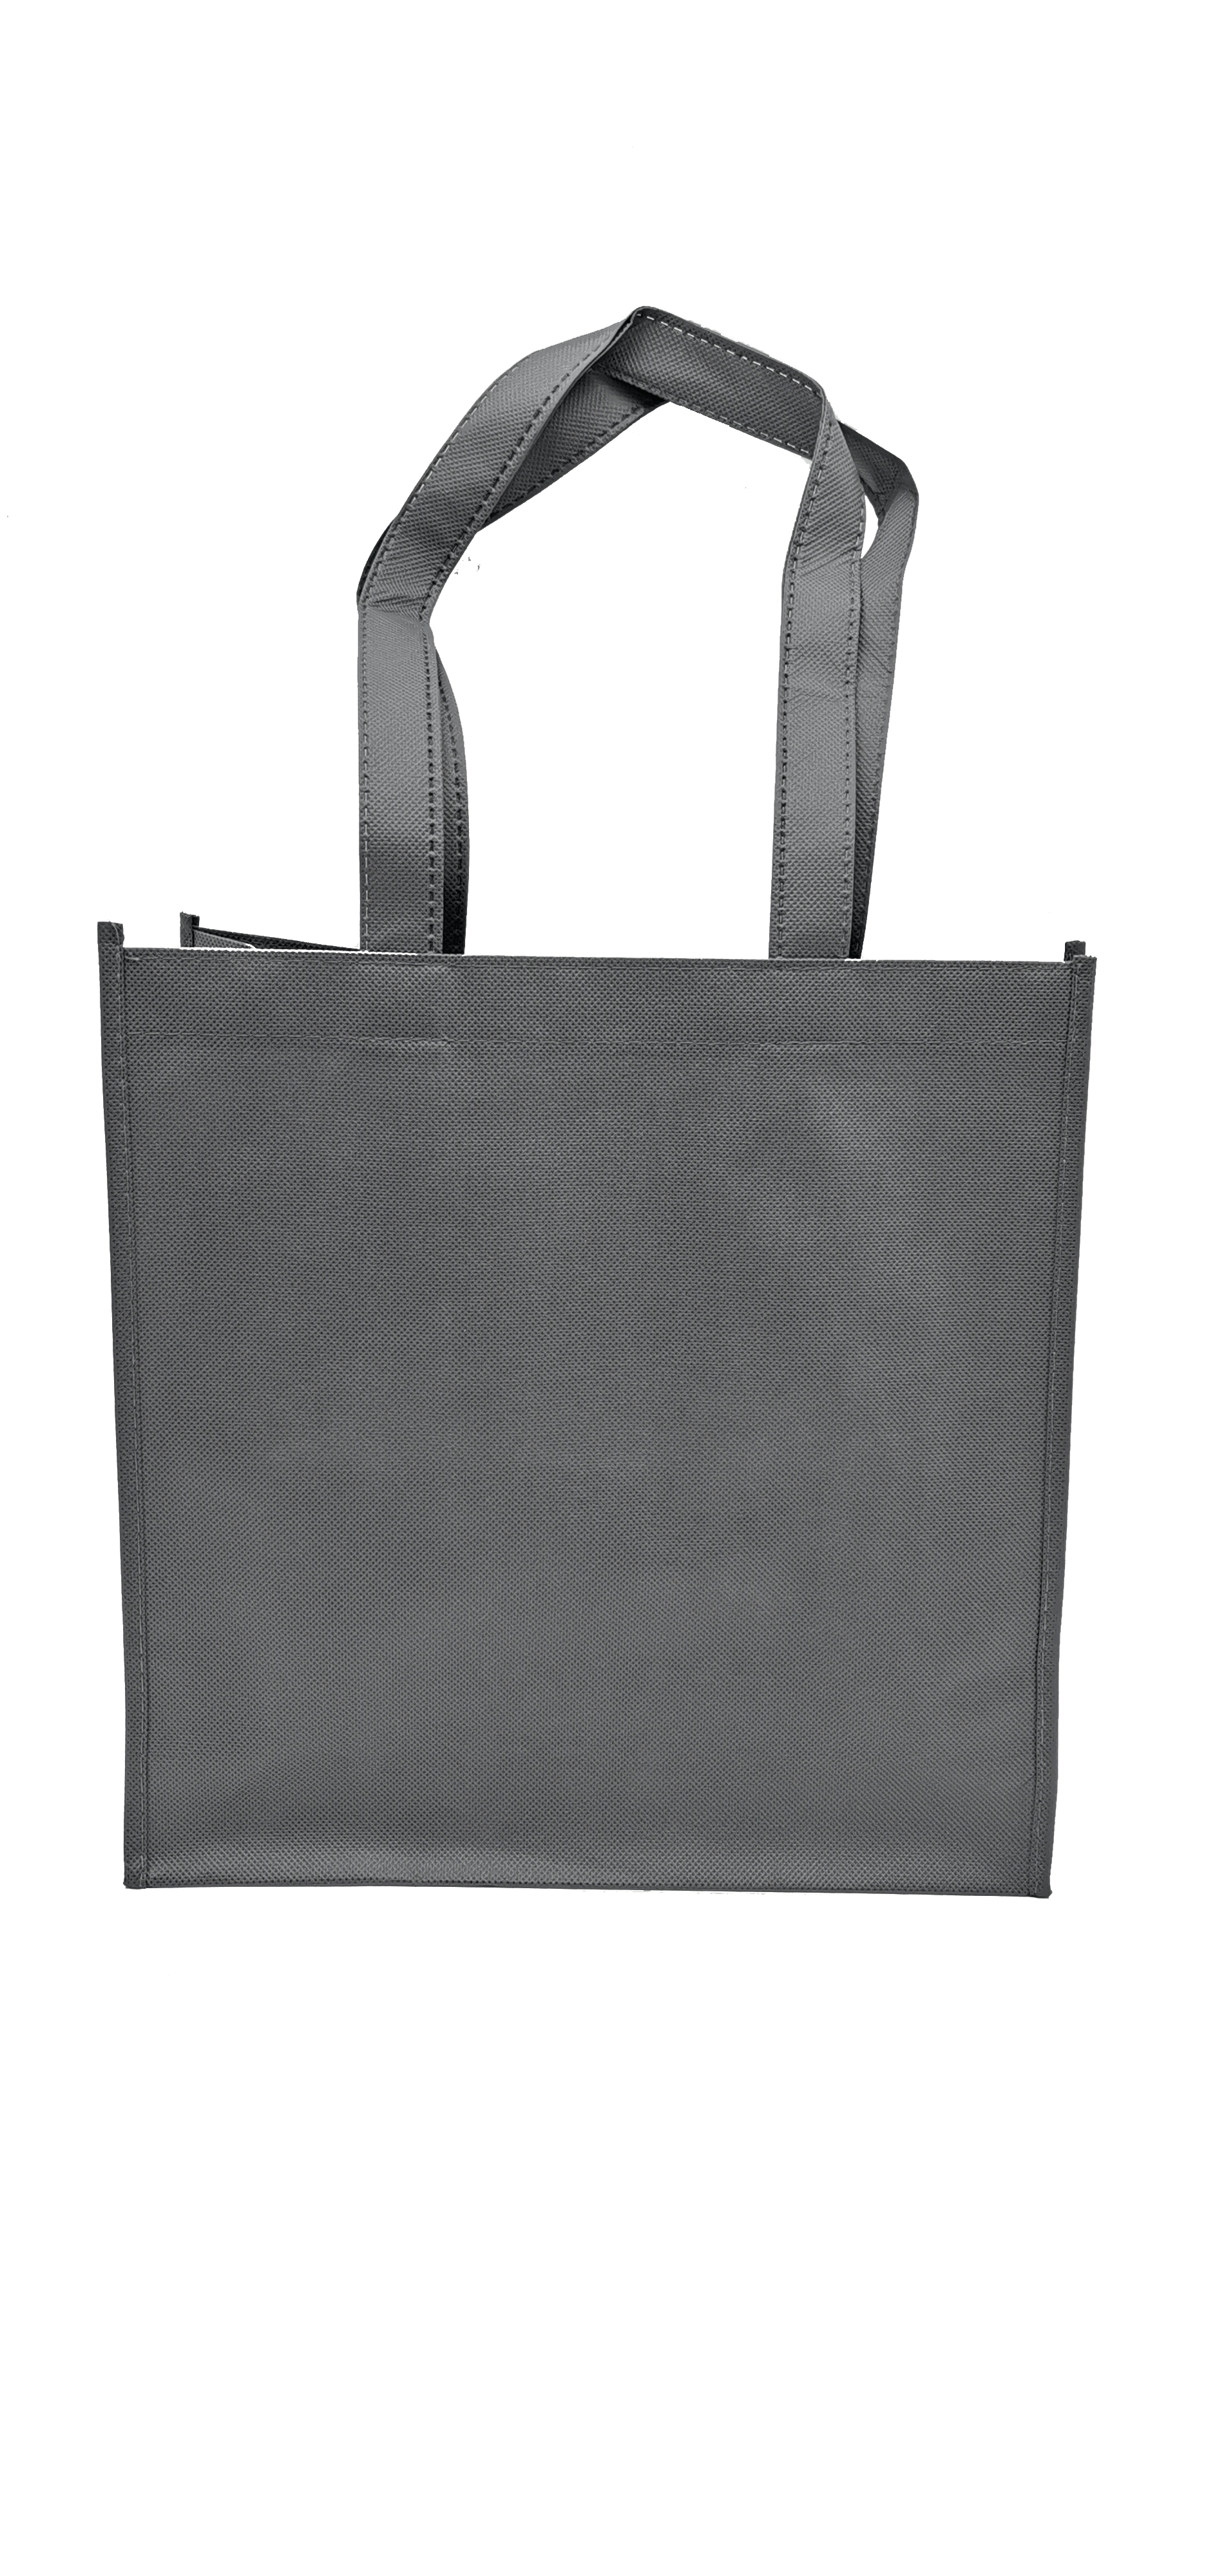 [READY STOCK] Non-Woven Multifunctional Eco-friendly Recycle Bag/Carrier Bag/Tote Bag 30cm(H) x 30cm(L) x 10cm(W)